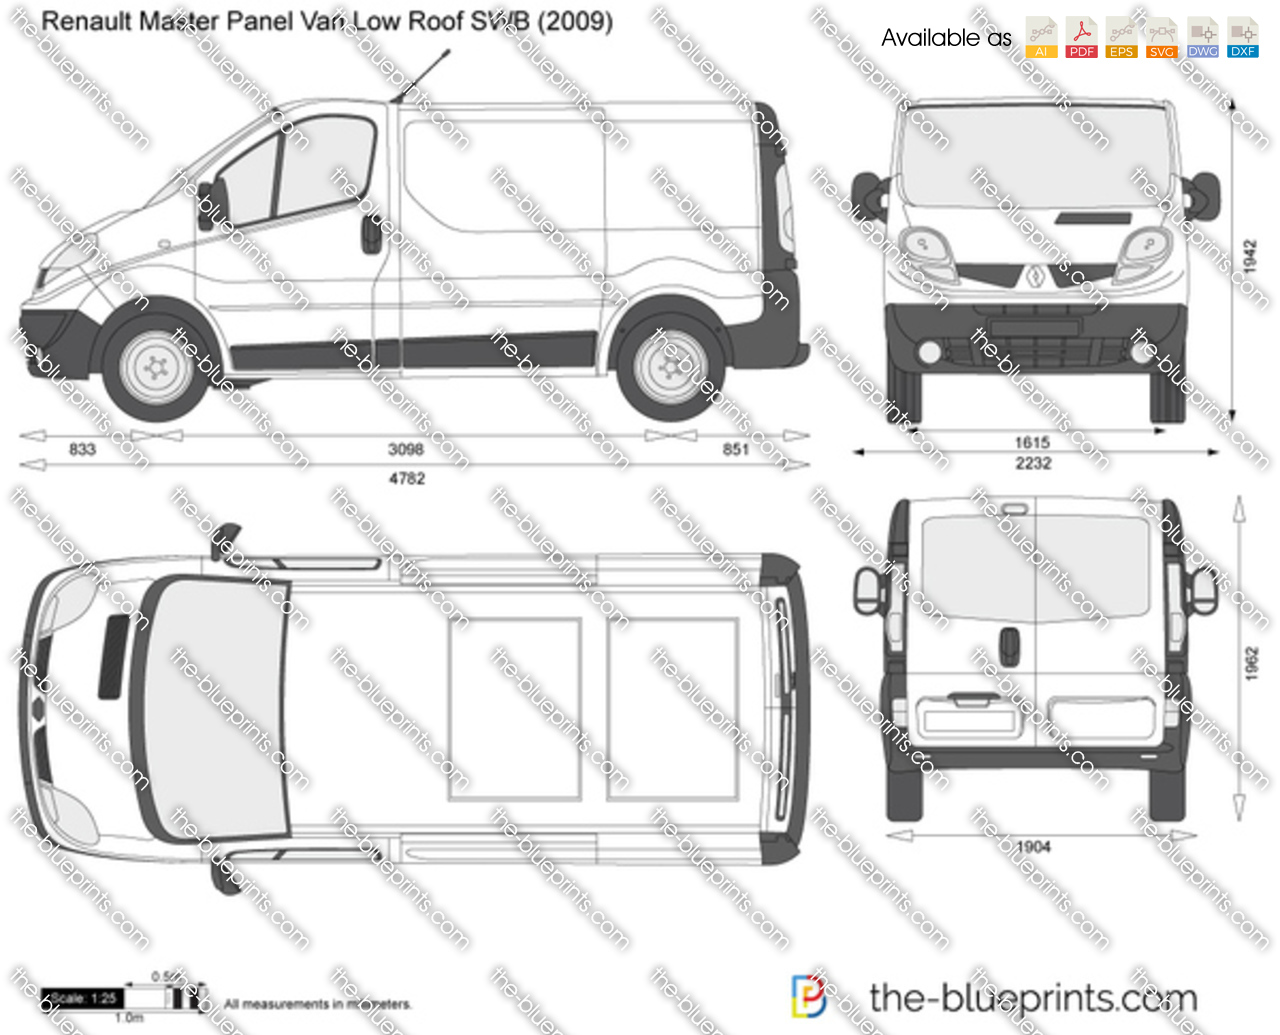 renault trafic panel van low roof swb vector drawing. Black Bedroom Furniture Sets. Home Design Ideas